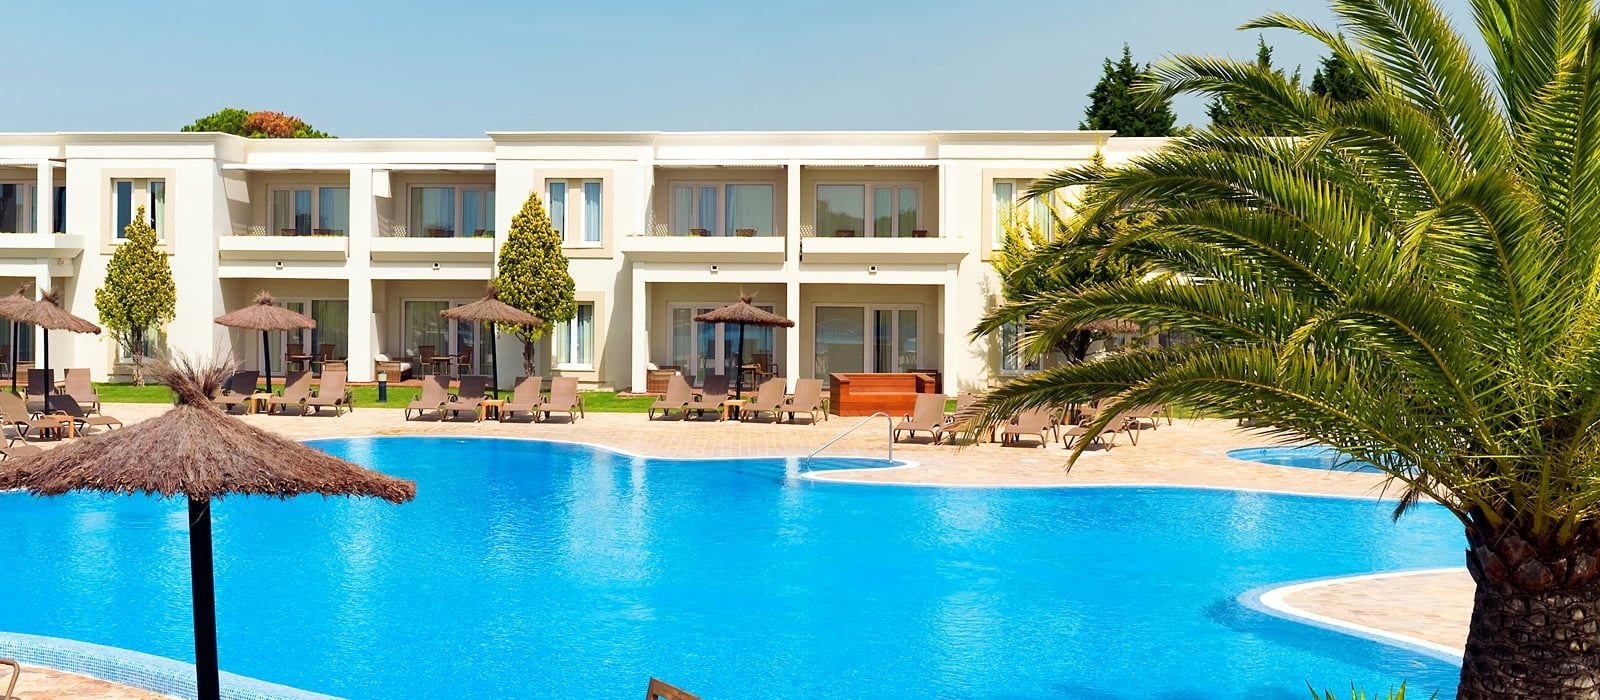 Promotions Hotel Vincci Cádiz Costa Golf - Stay 3 nights and save -10%!